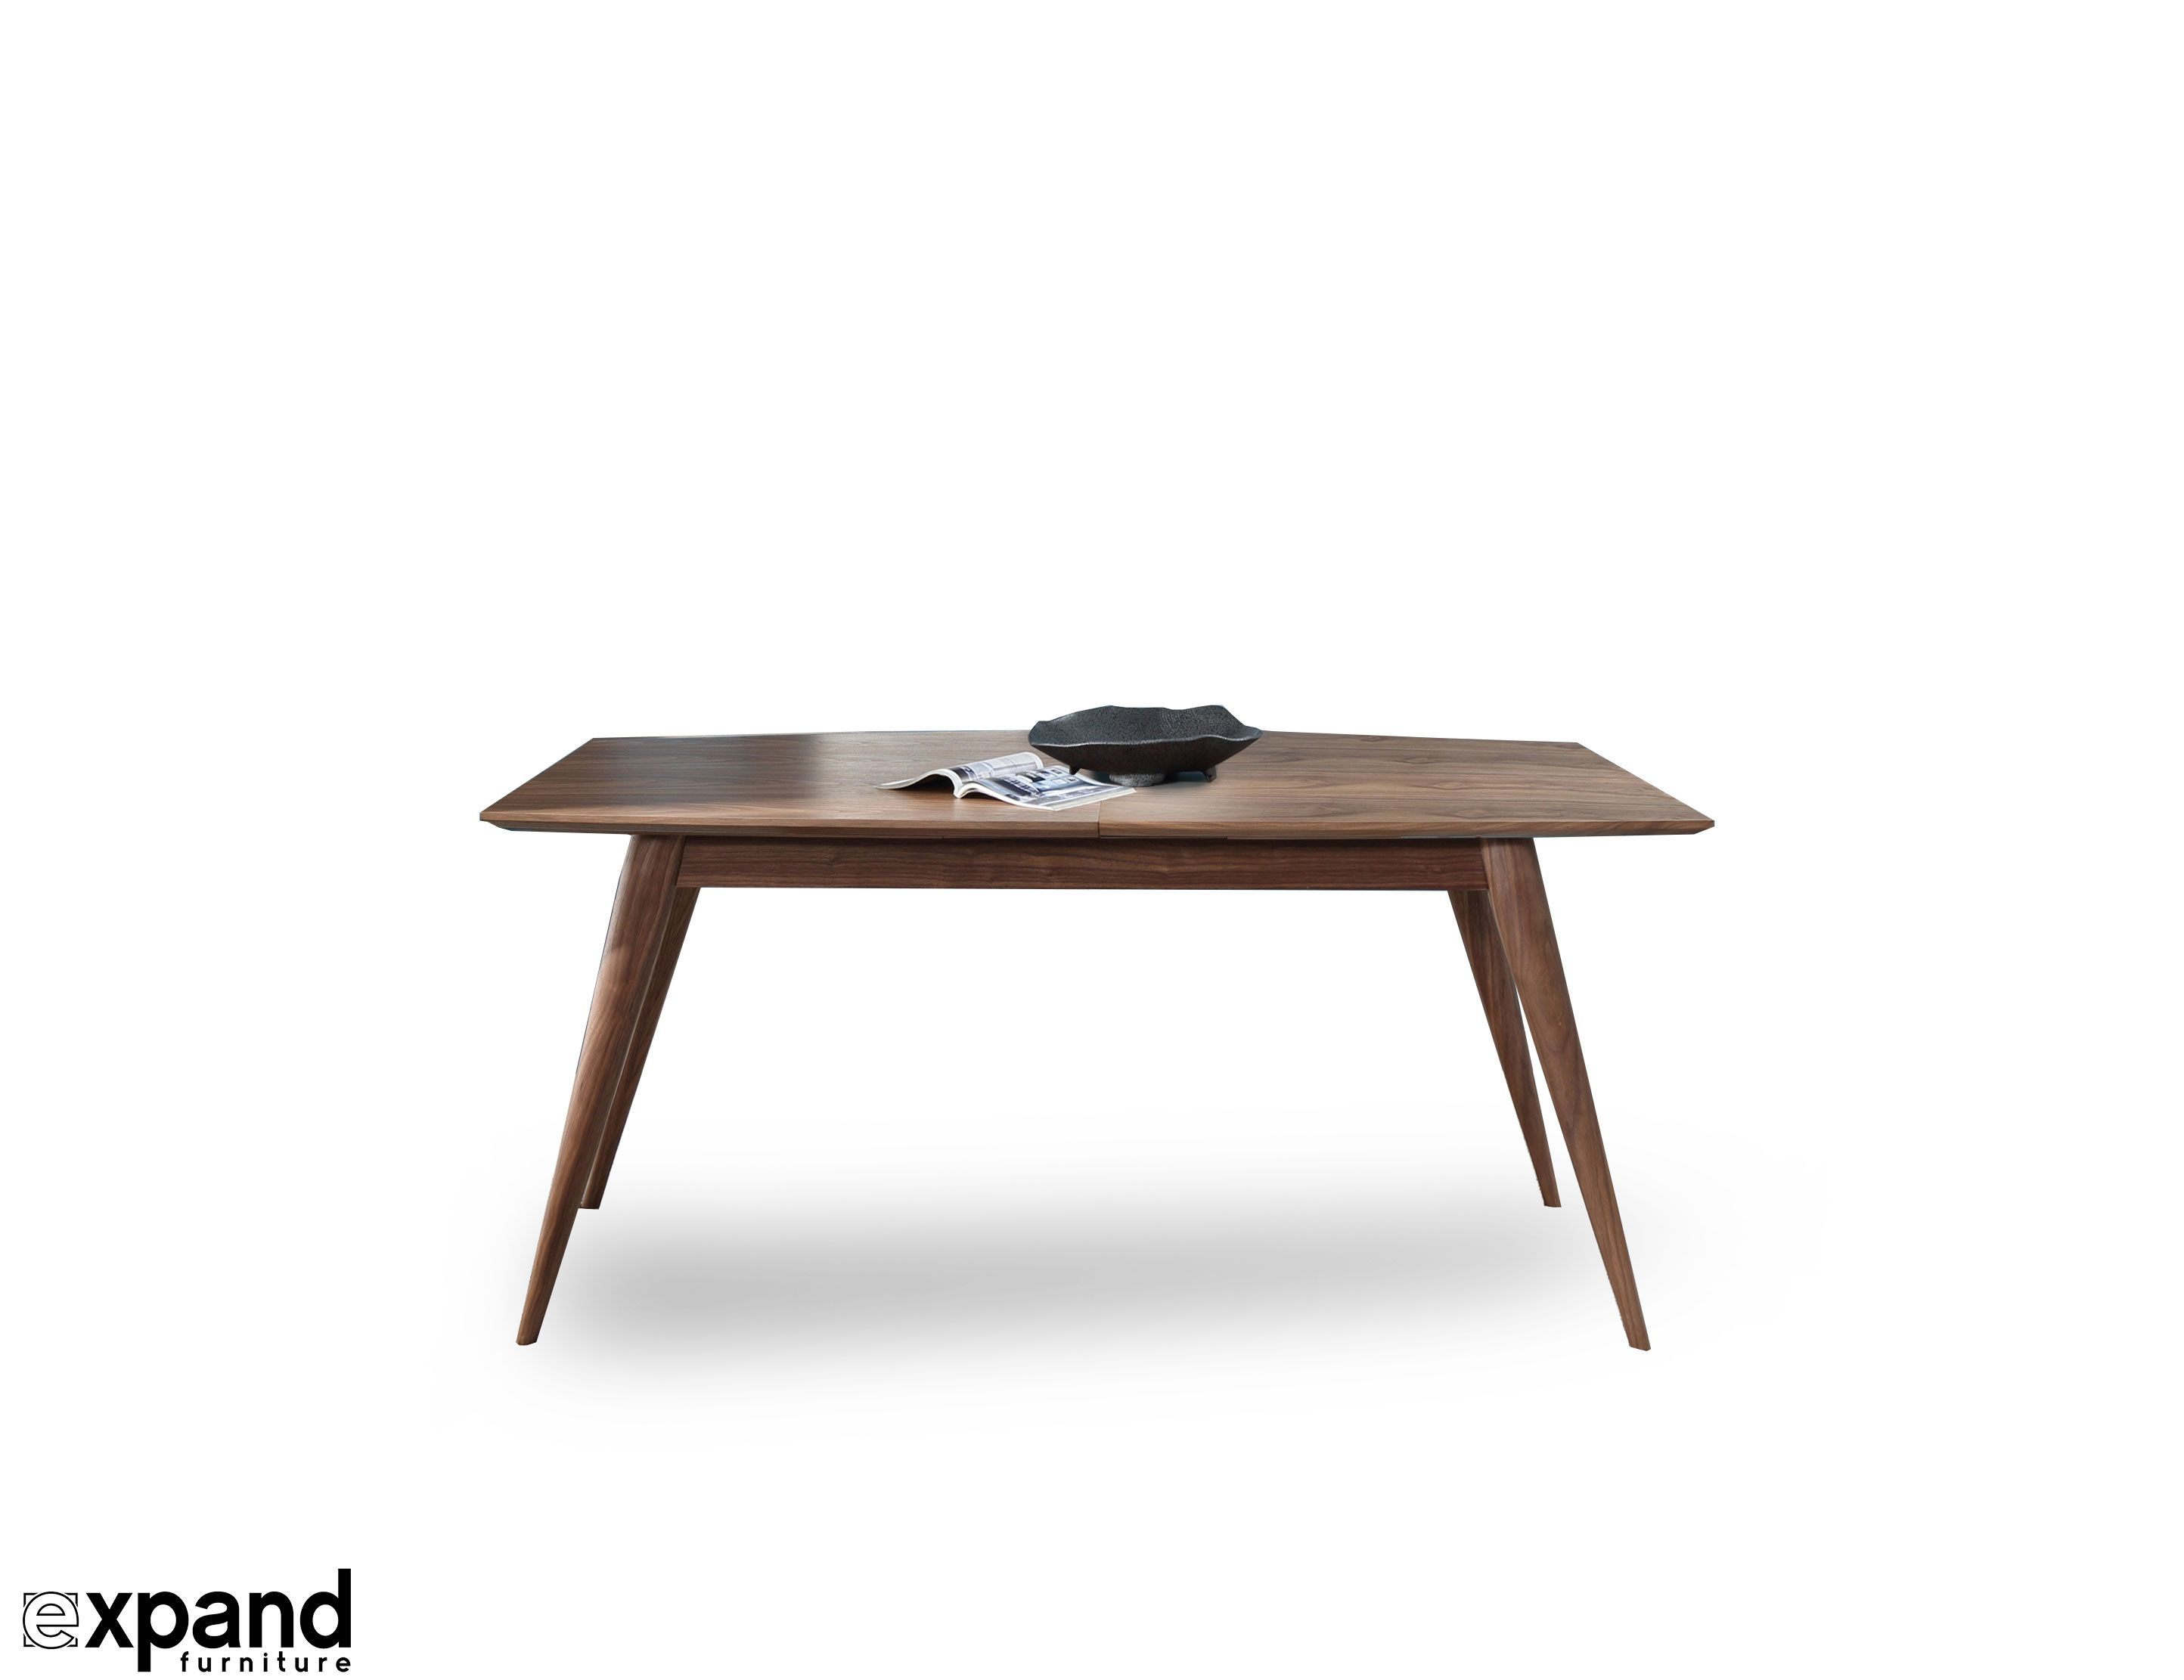 A wood table that extends and expands, for occasional dining or as a centerpiece of your kitchen or dining set. Purchase online, Shipped worldwide.